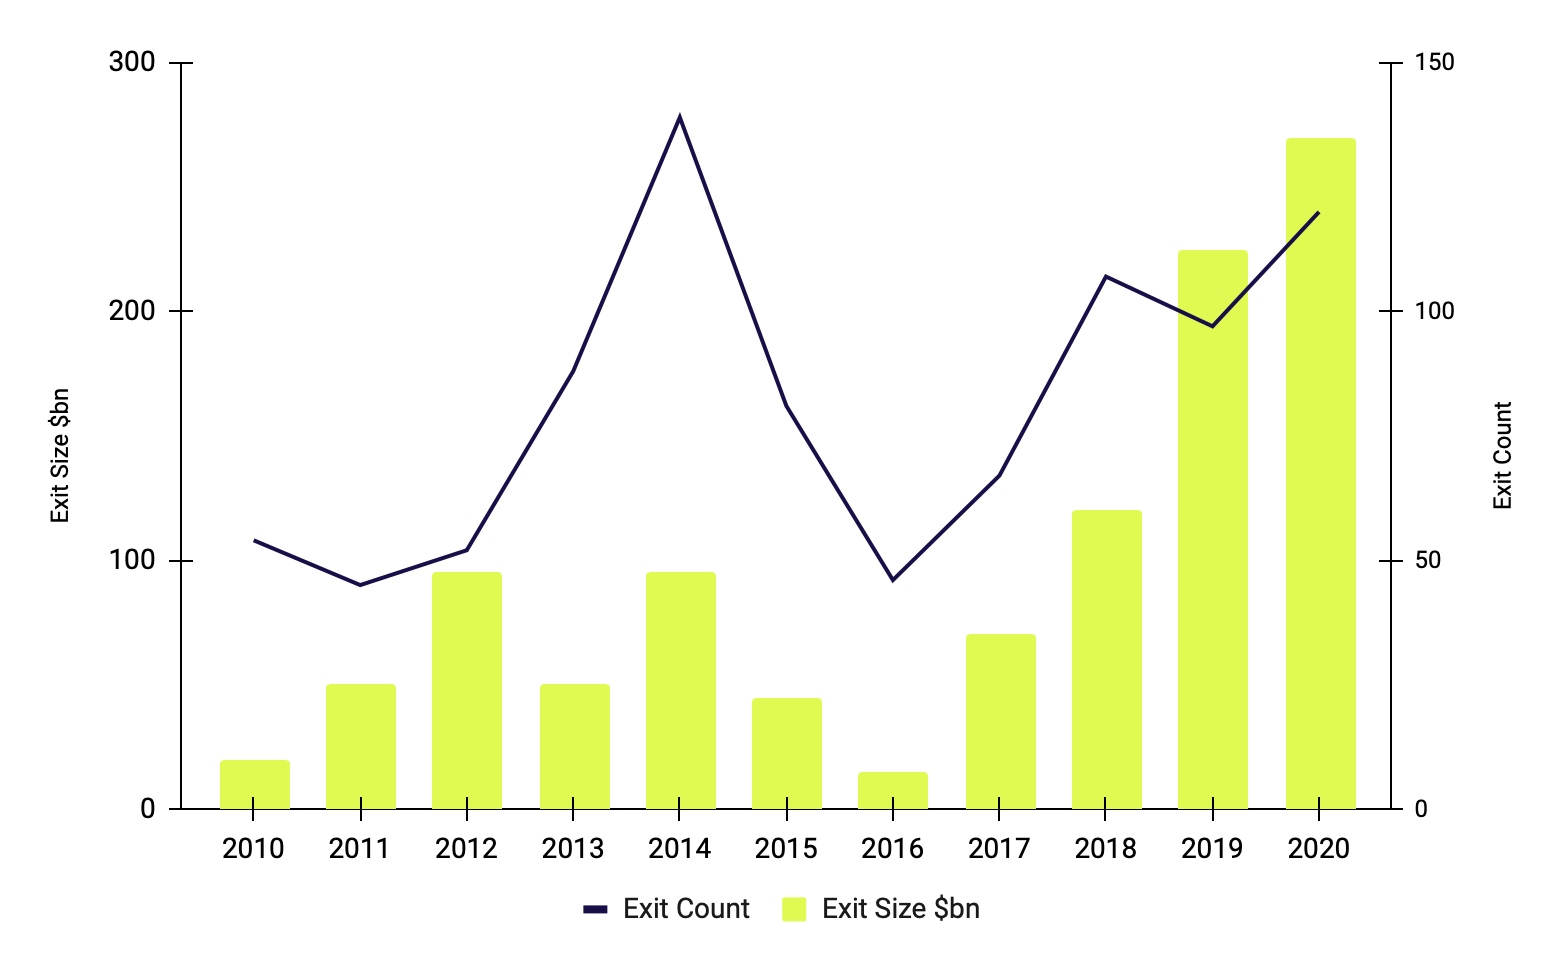 VC-backed IPOs in the US: 2010 - 2020